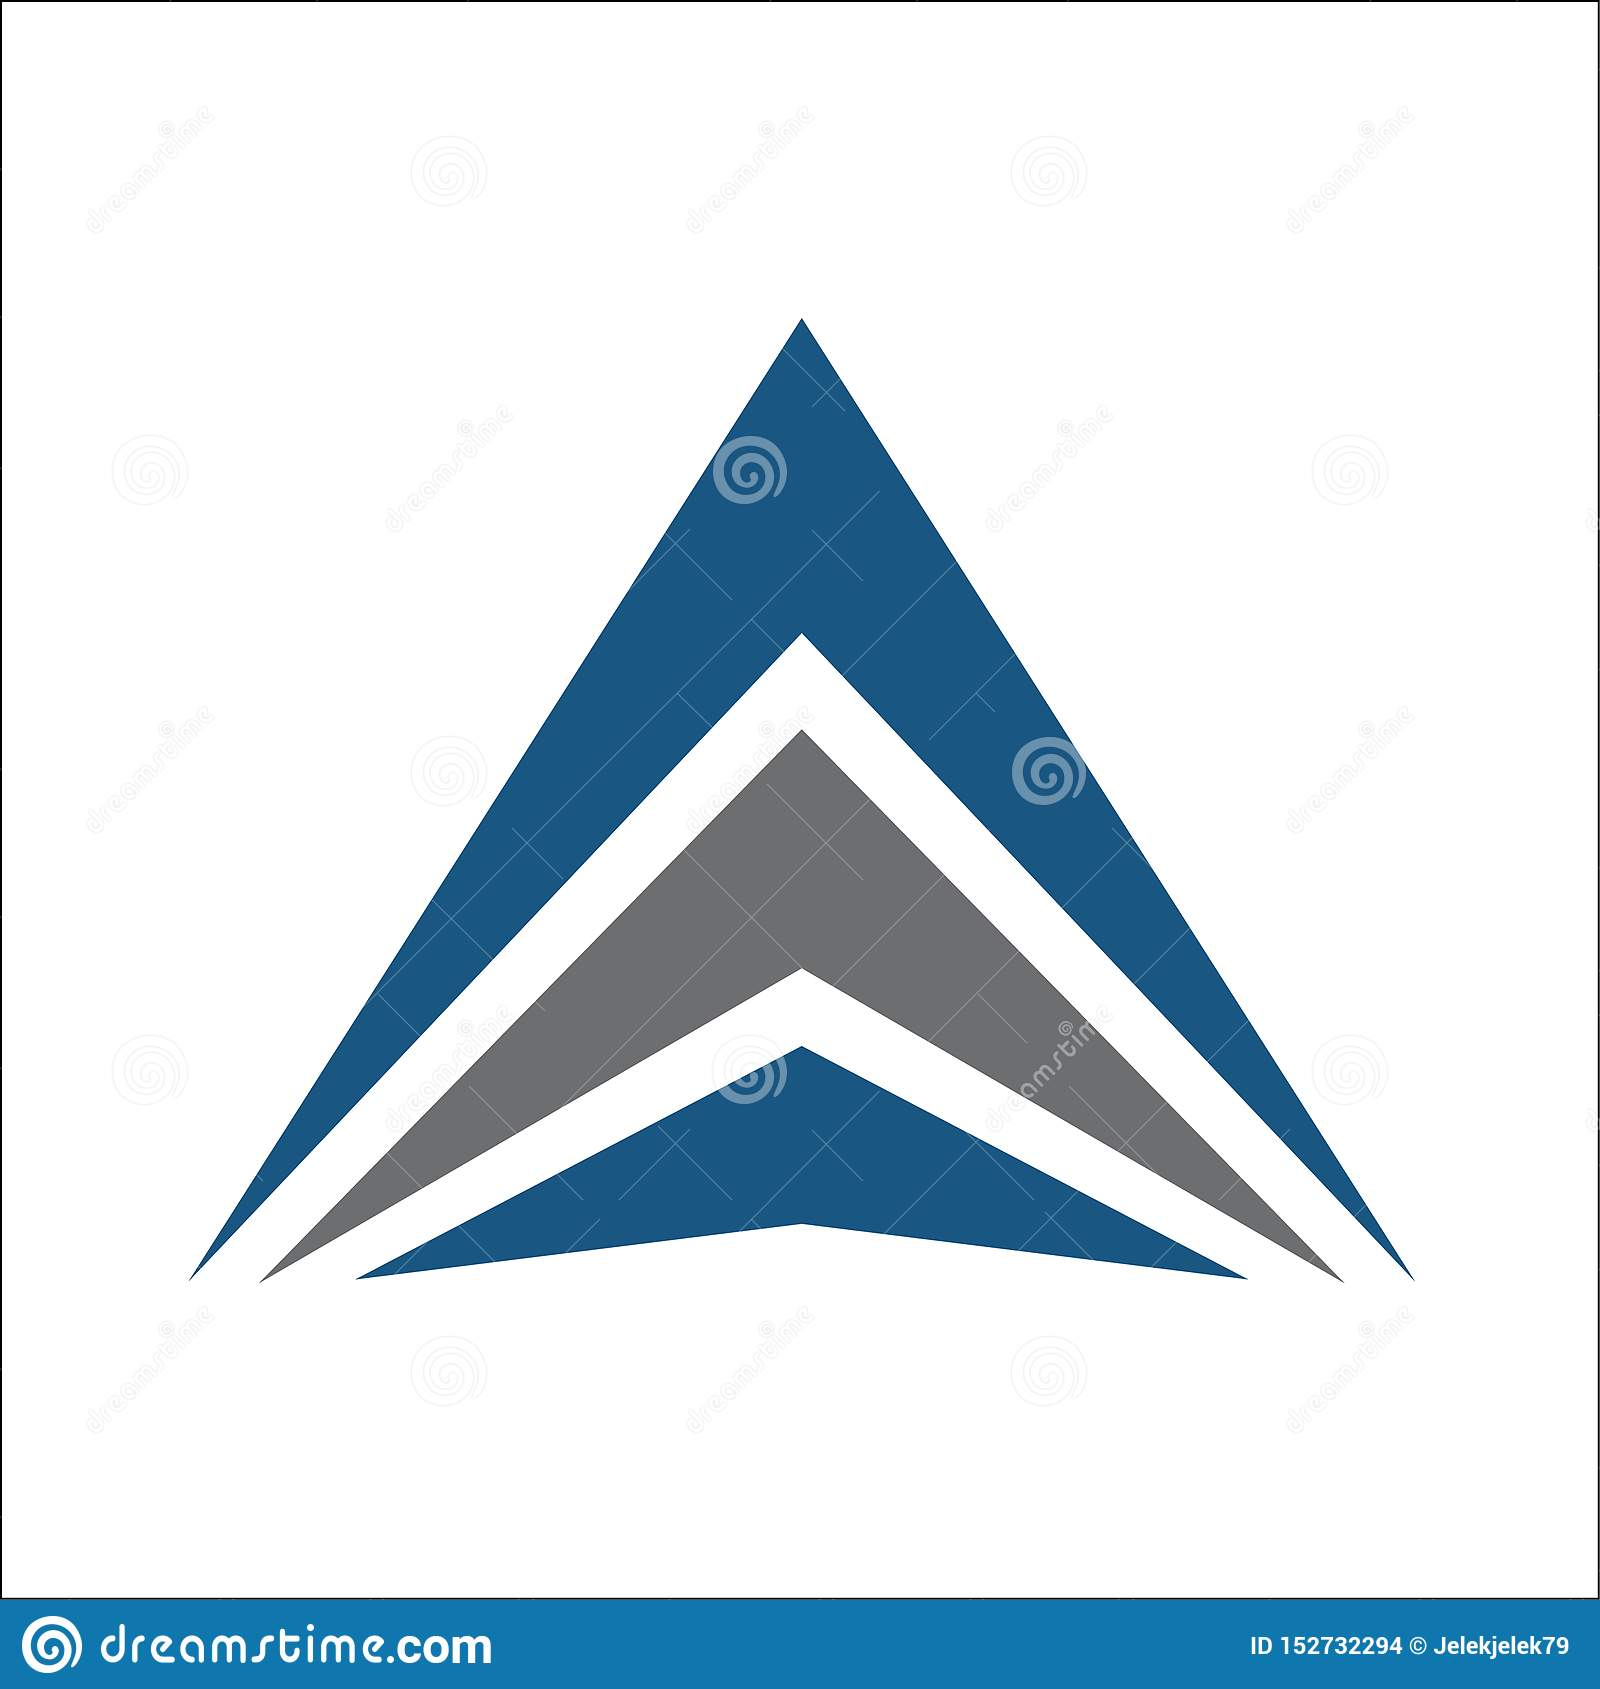 Triangle logo abstract